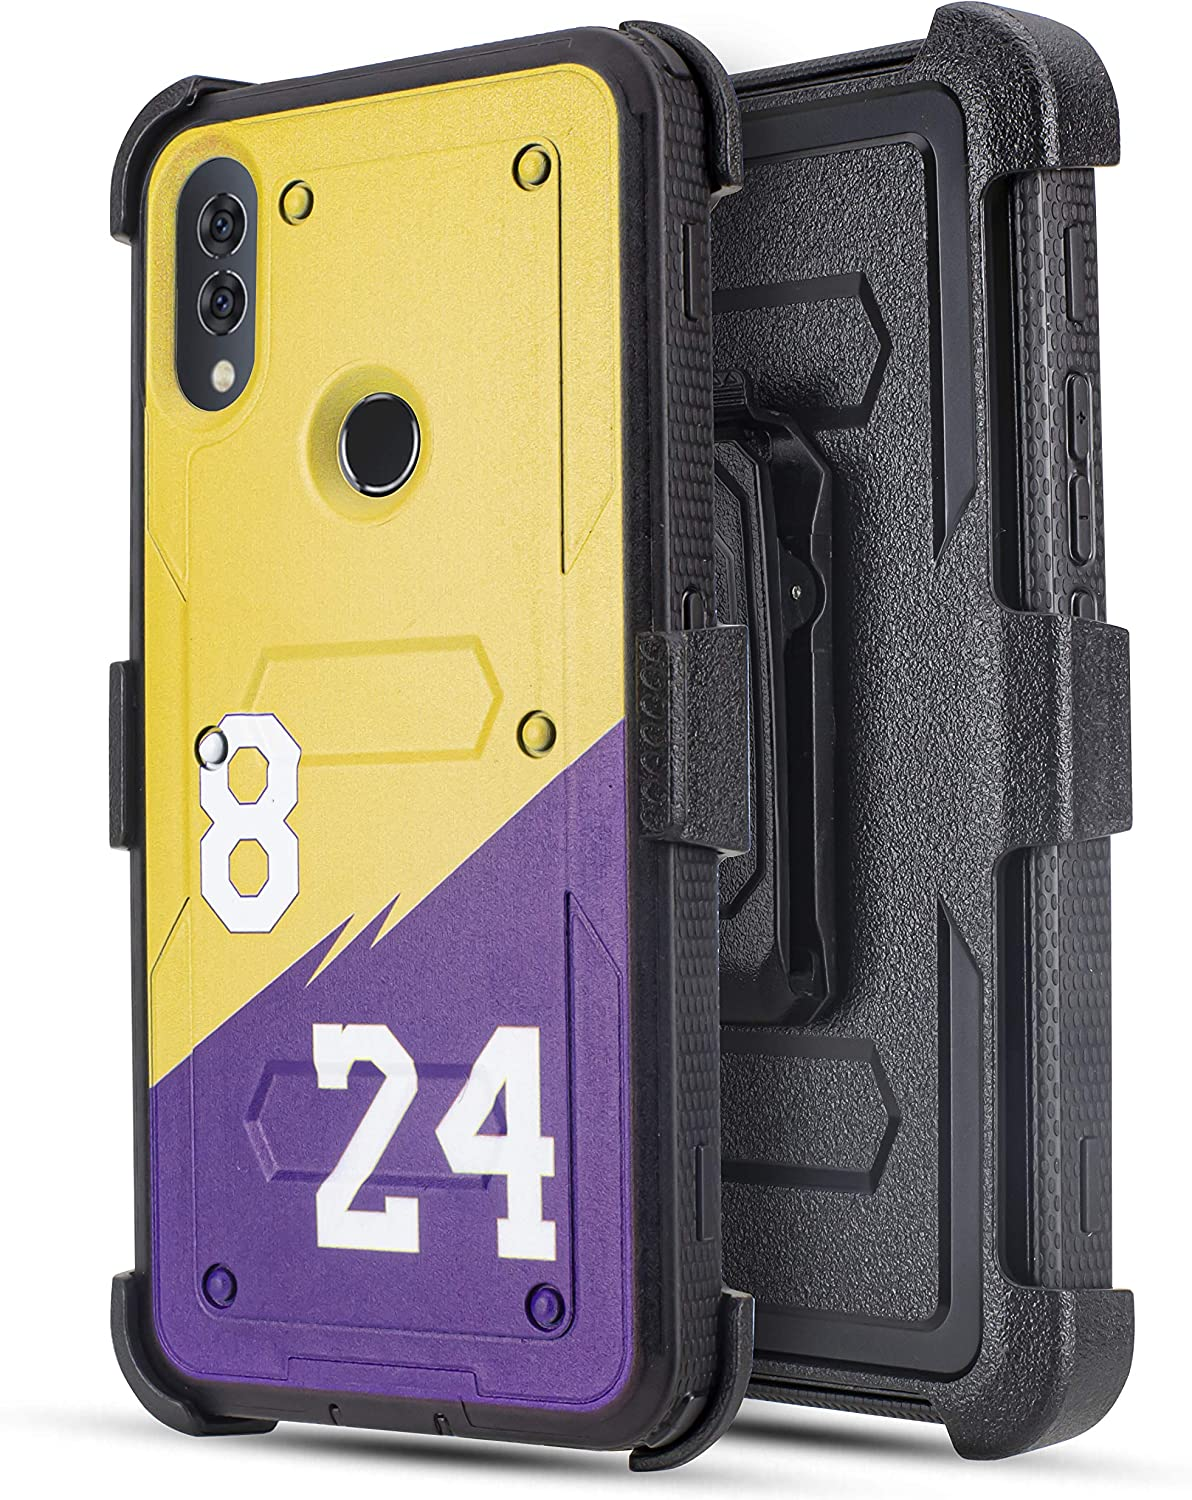 Customerfirst Case for Alcatel 3V 2019/5032W (Will Not Fit Alcatel 3V 2018), Built-in [Screen Protector] Heavy Duty Holster Cover [Belt Clip][Kickstand] (24)